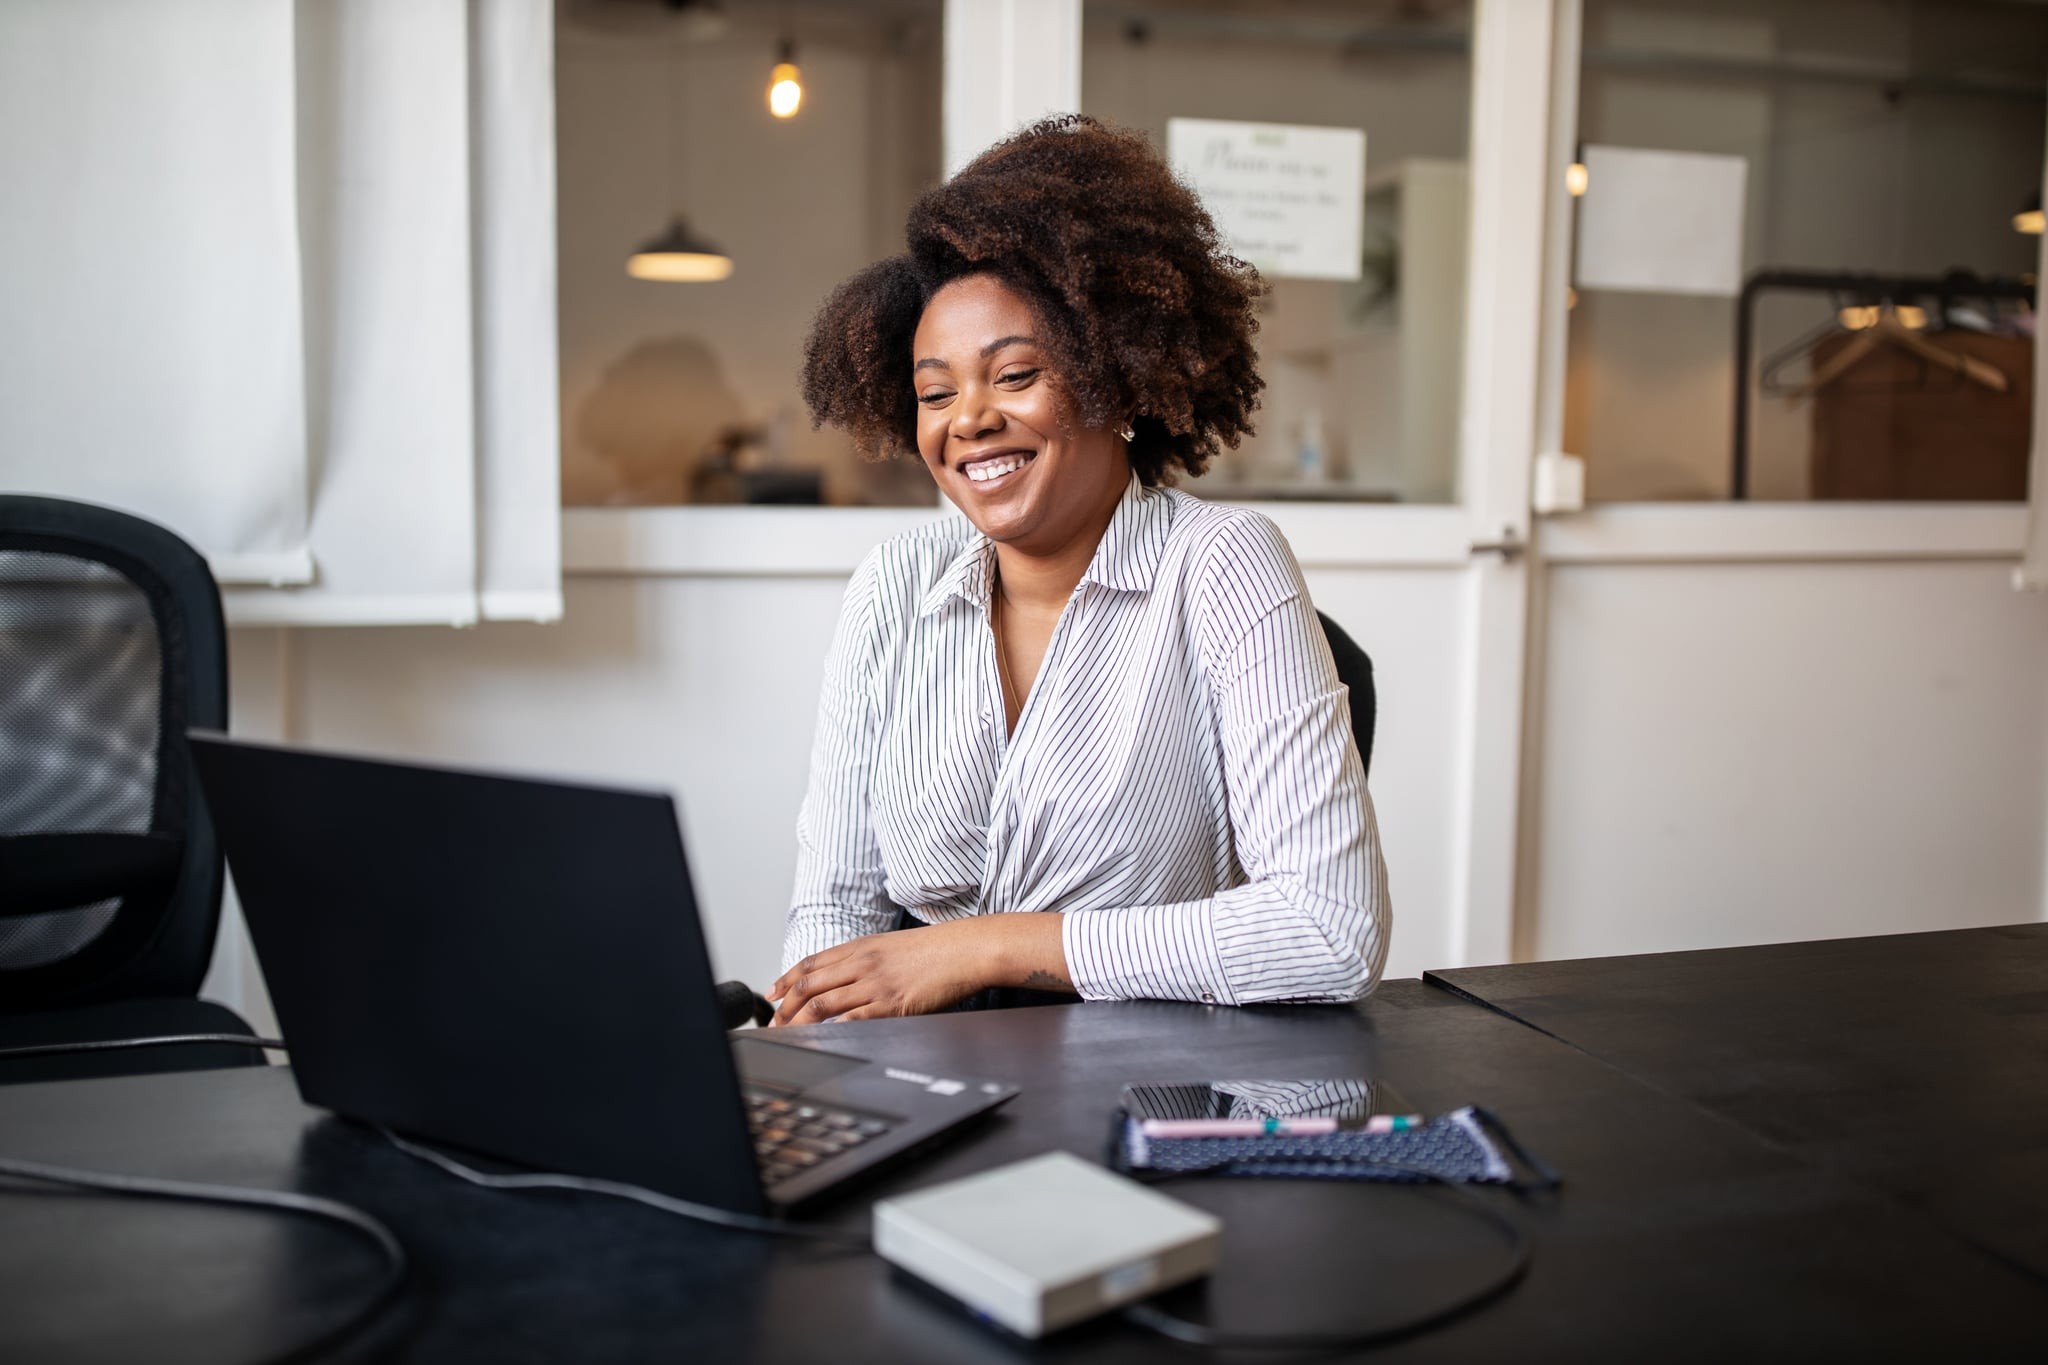 Businessman sitting in office smiling during a video call. African woman on a video conference meeting at office.